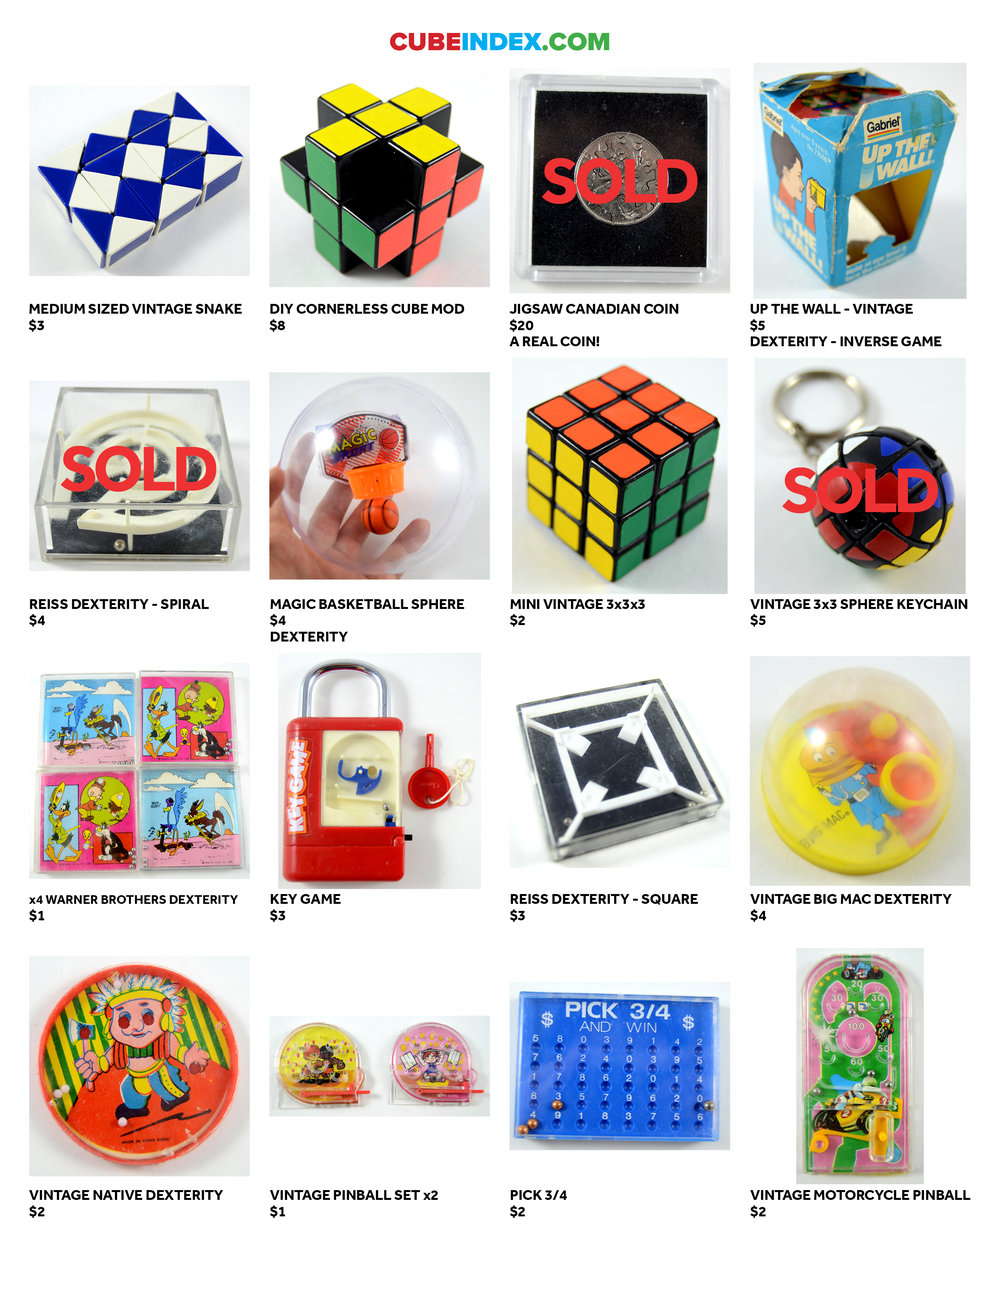 cube-index-for-sale-catalog-april-2017-v520.jpg